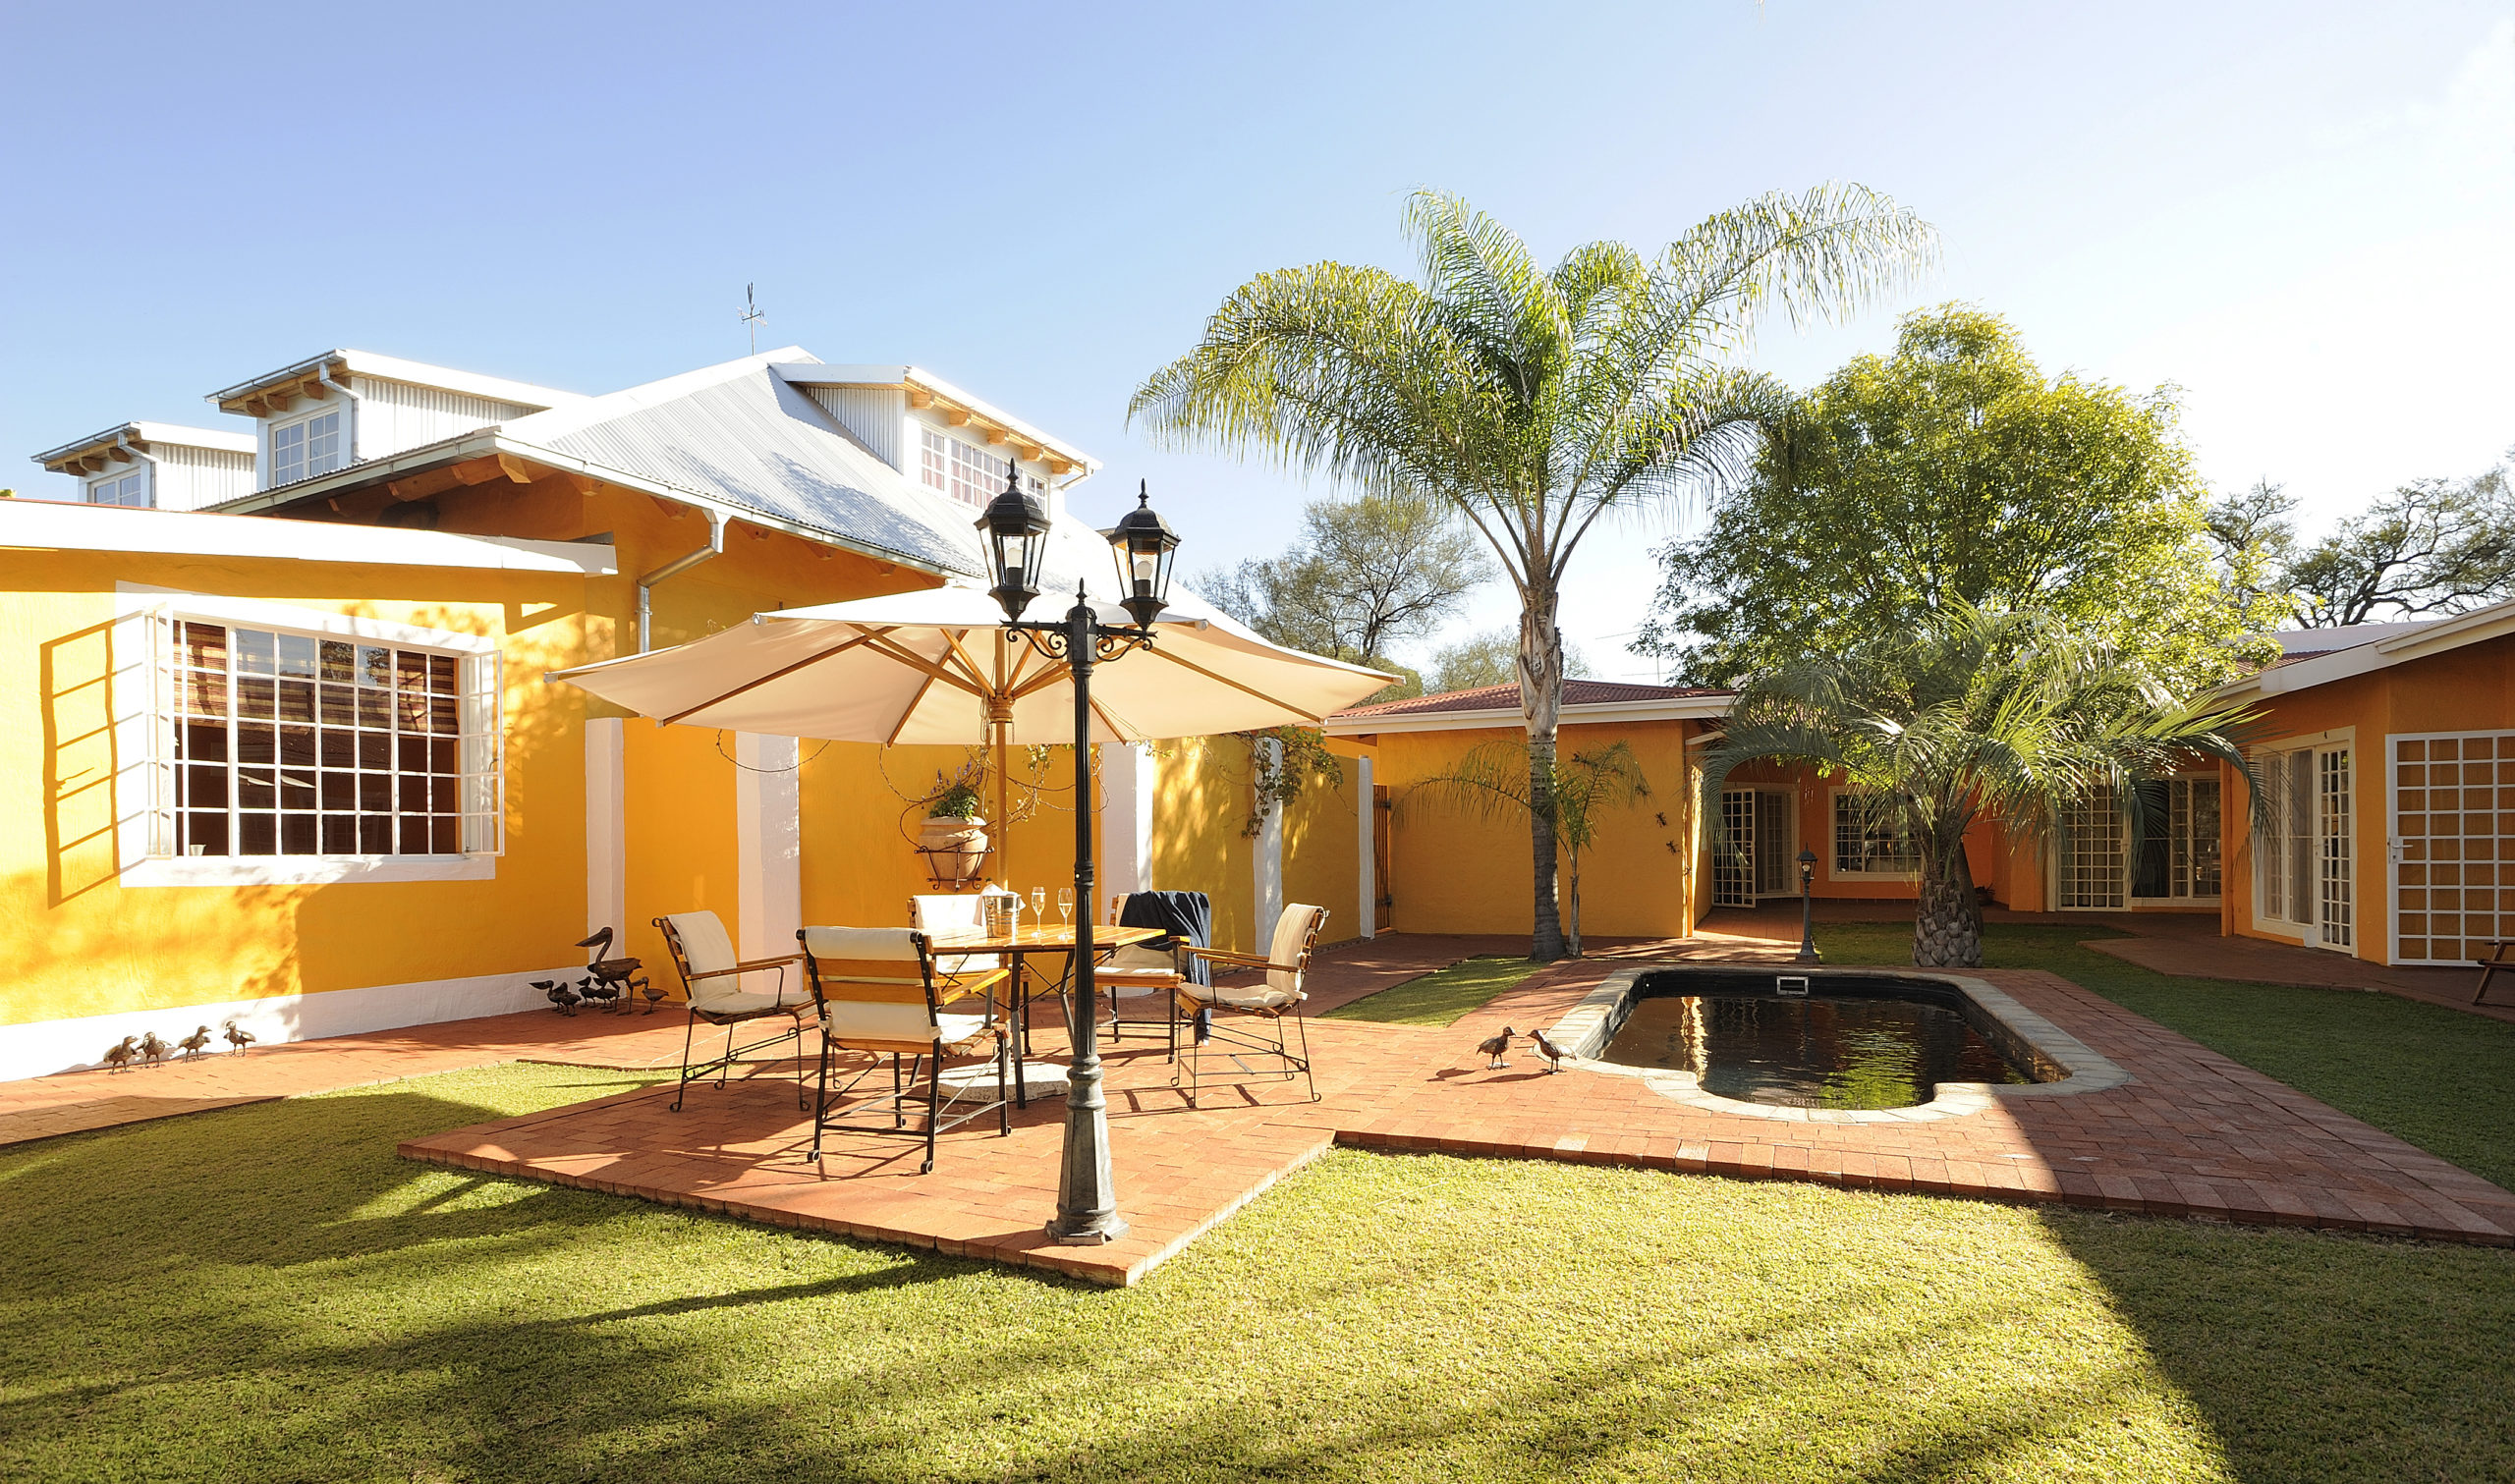 Casa Piccolo Guest House Windhoek, Namibia: room